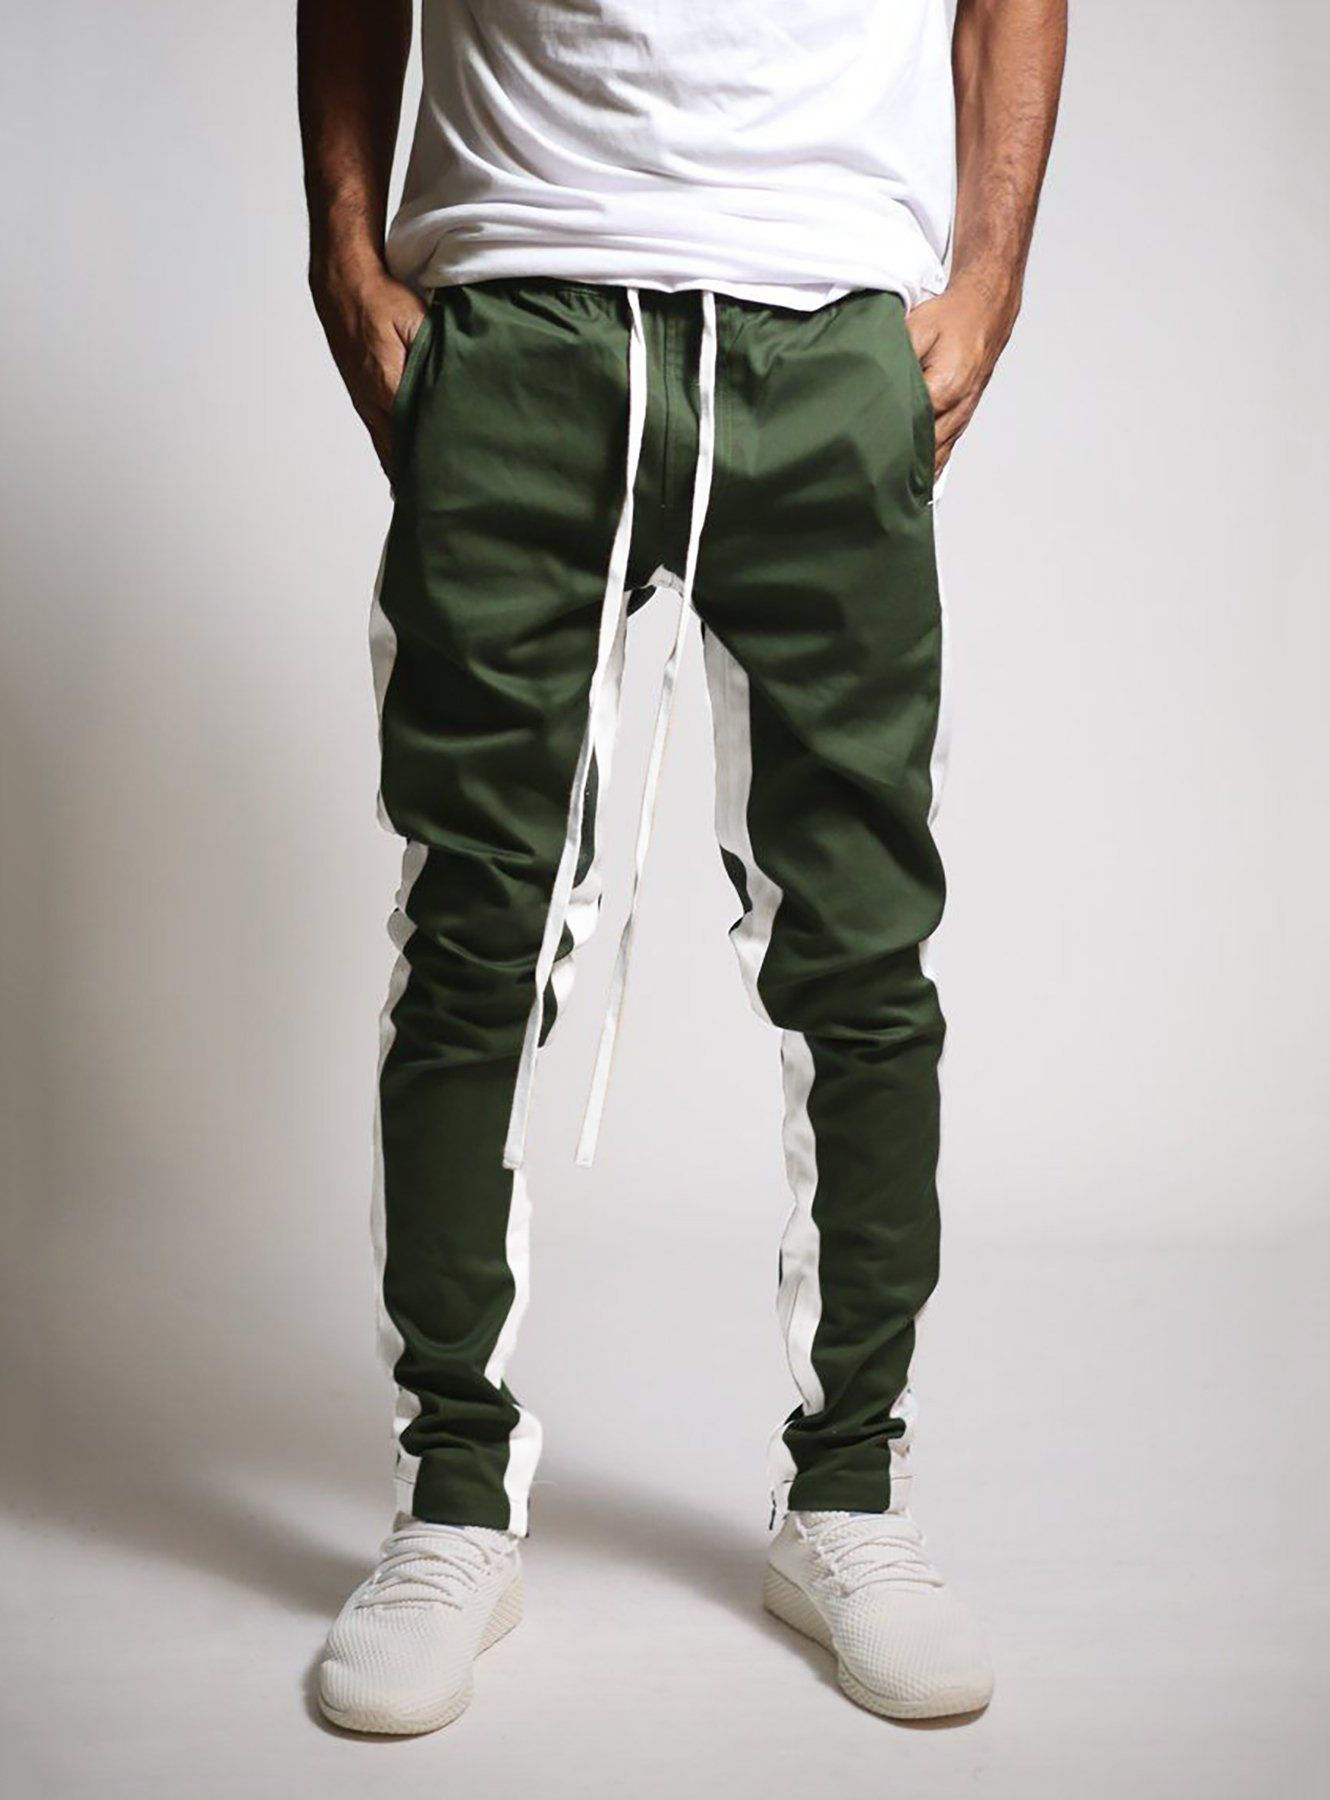 66c40ff9efb0fb Double Striped Track Pant in Olive and White in 2019